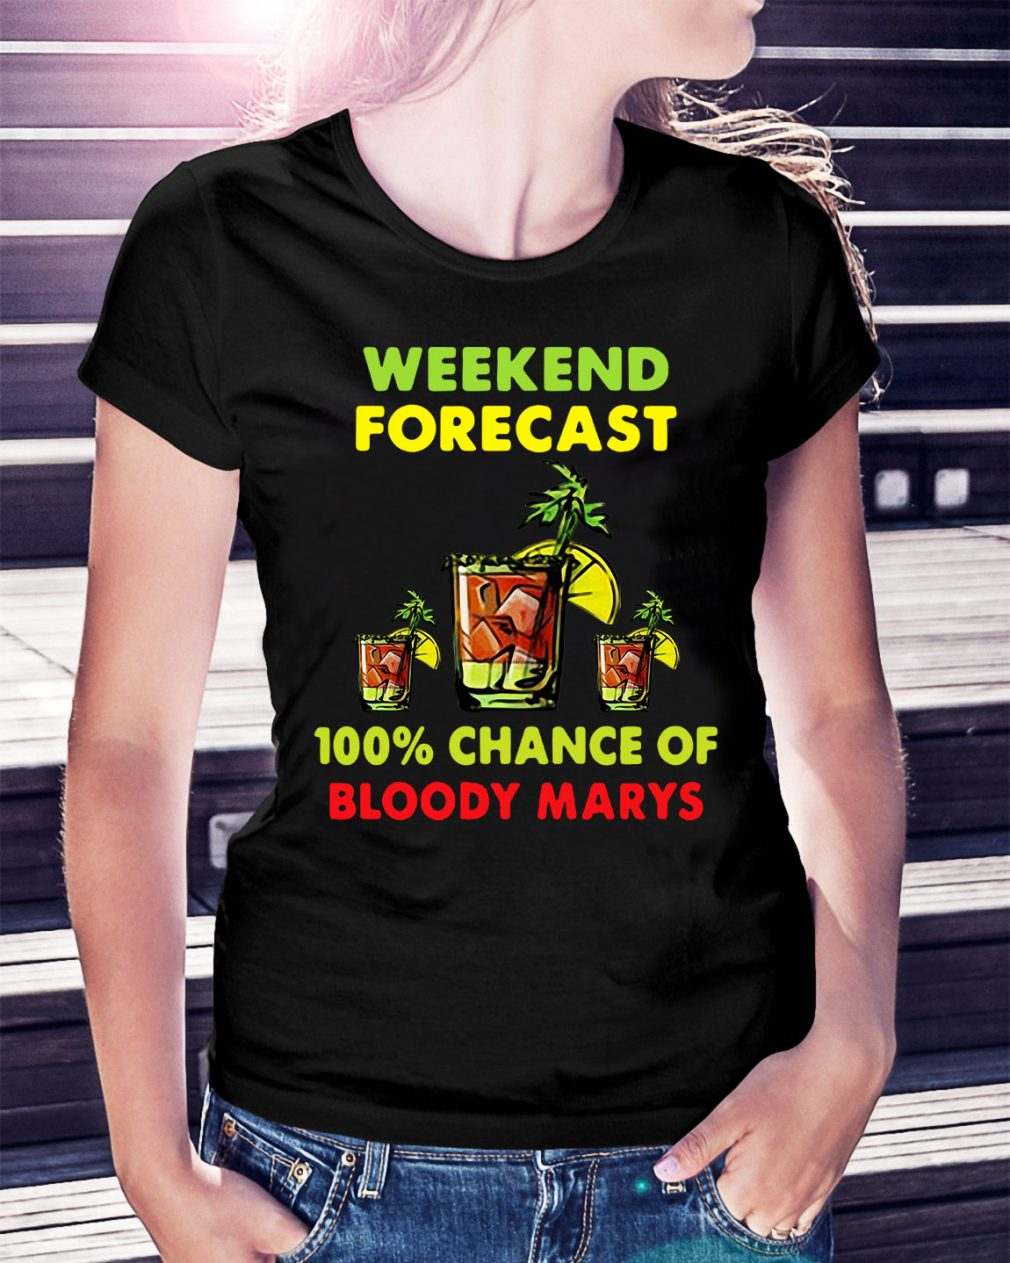 Weekend forecast 100% chance of bloody marys Ladies Tee